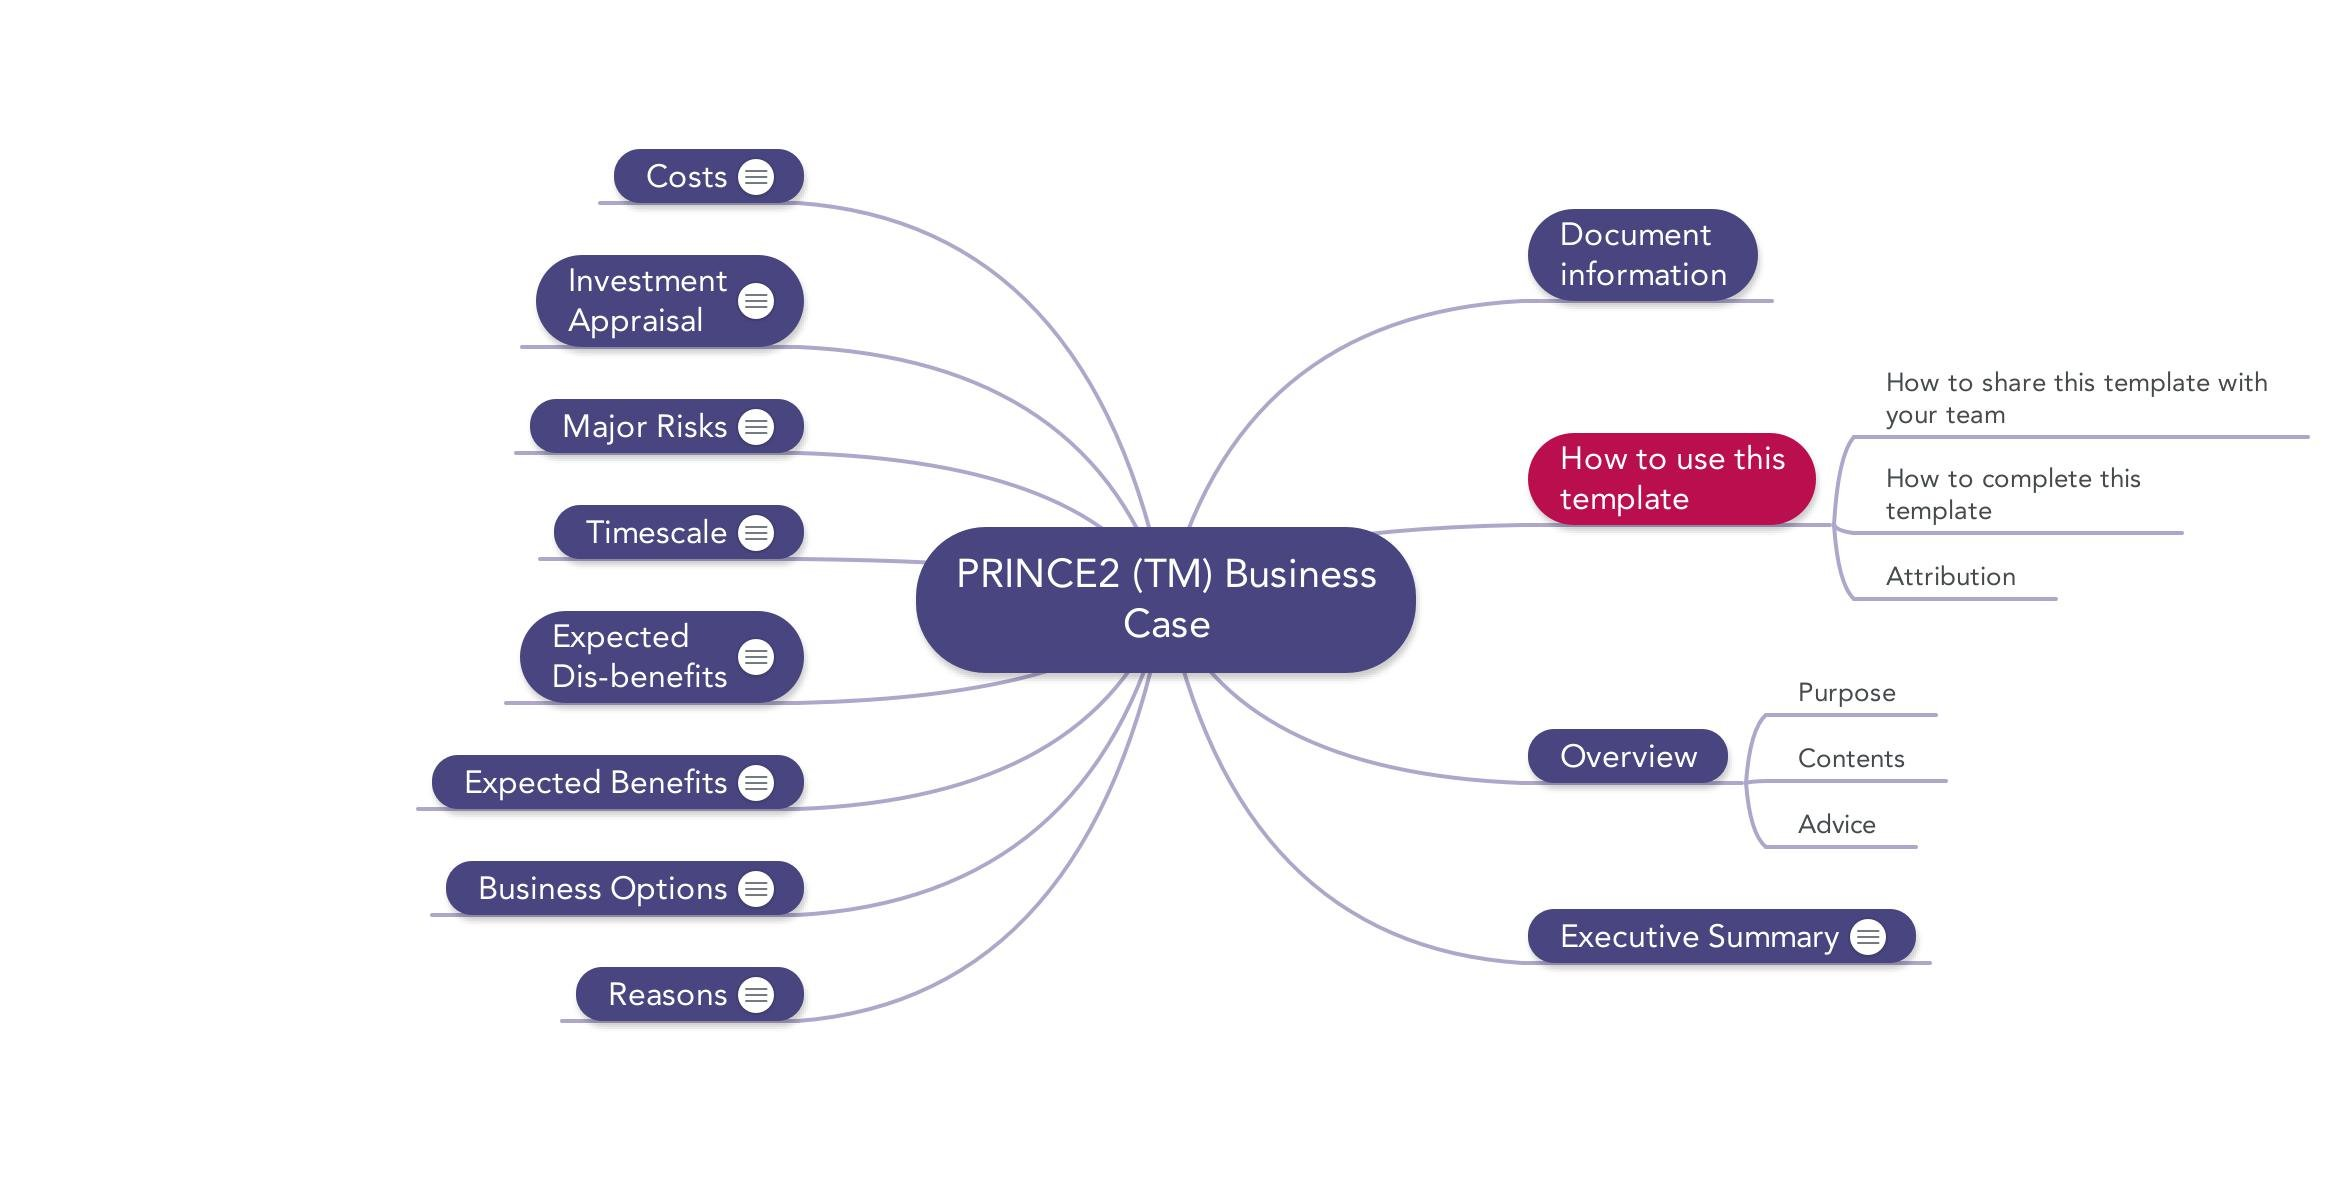 Prince2 business case download template prince2 business case wajeb Gallery